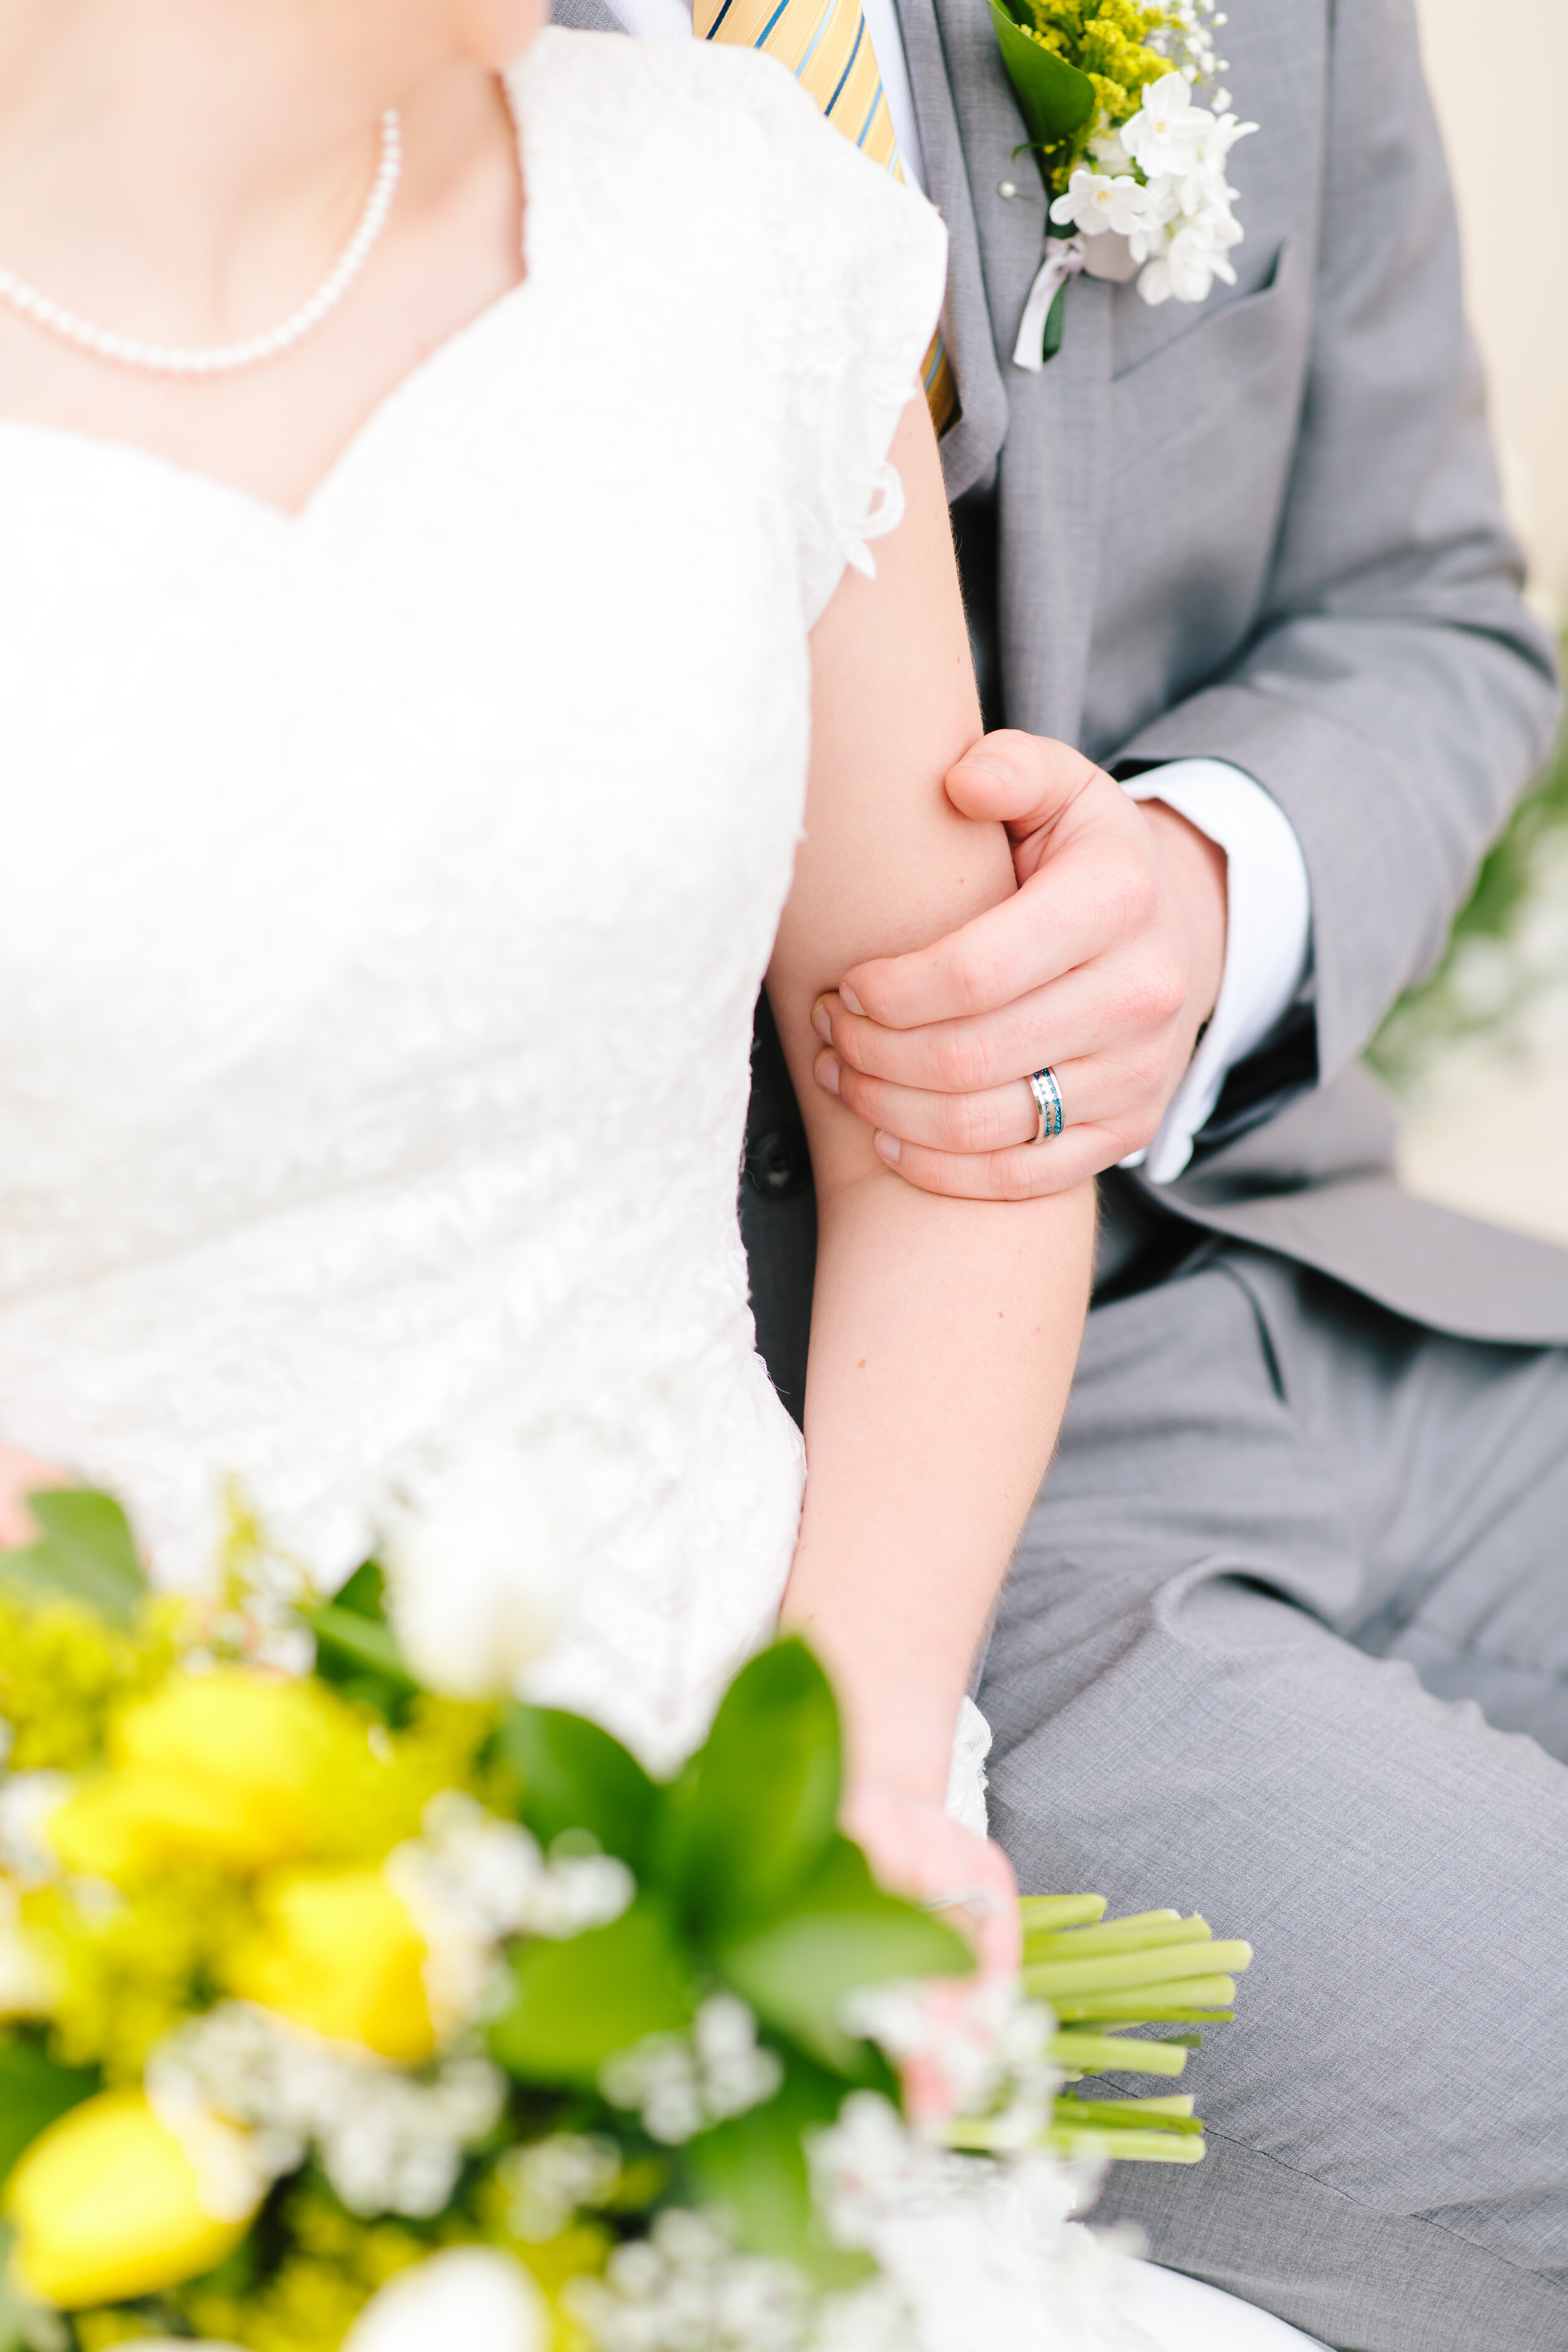 mens wedding ring inspiration unique mens wedding ring grey suit lace wedding dress lds couple mormon wedding couple pose inspiration show off the wedding ring wedding session aesthetic inspiration silver and turquoise mens wedding ring for time and all eternity #eternalbuddies #weddingsession #weddinginspo #ldswedding #ldsbride #couplegoals #paysontemple #temple #profressionalphotographer #utah #love